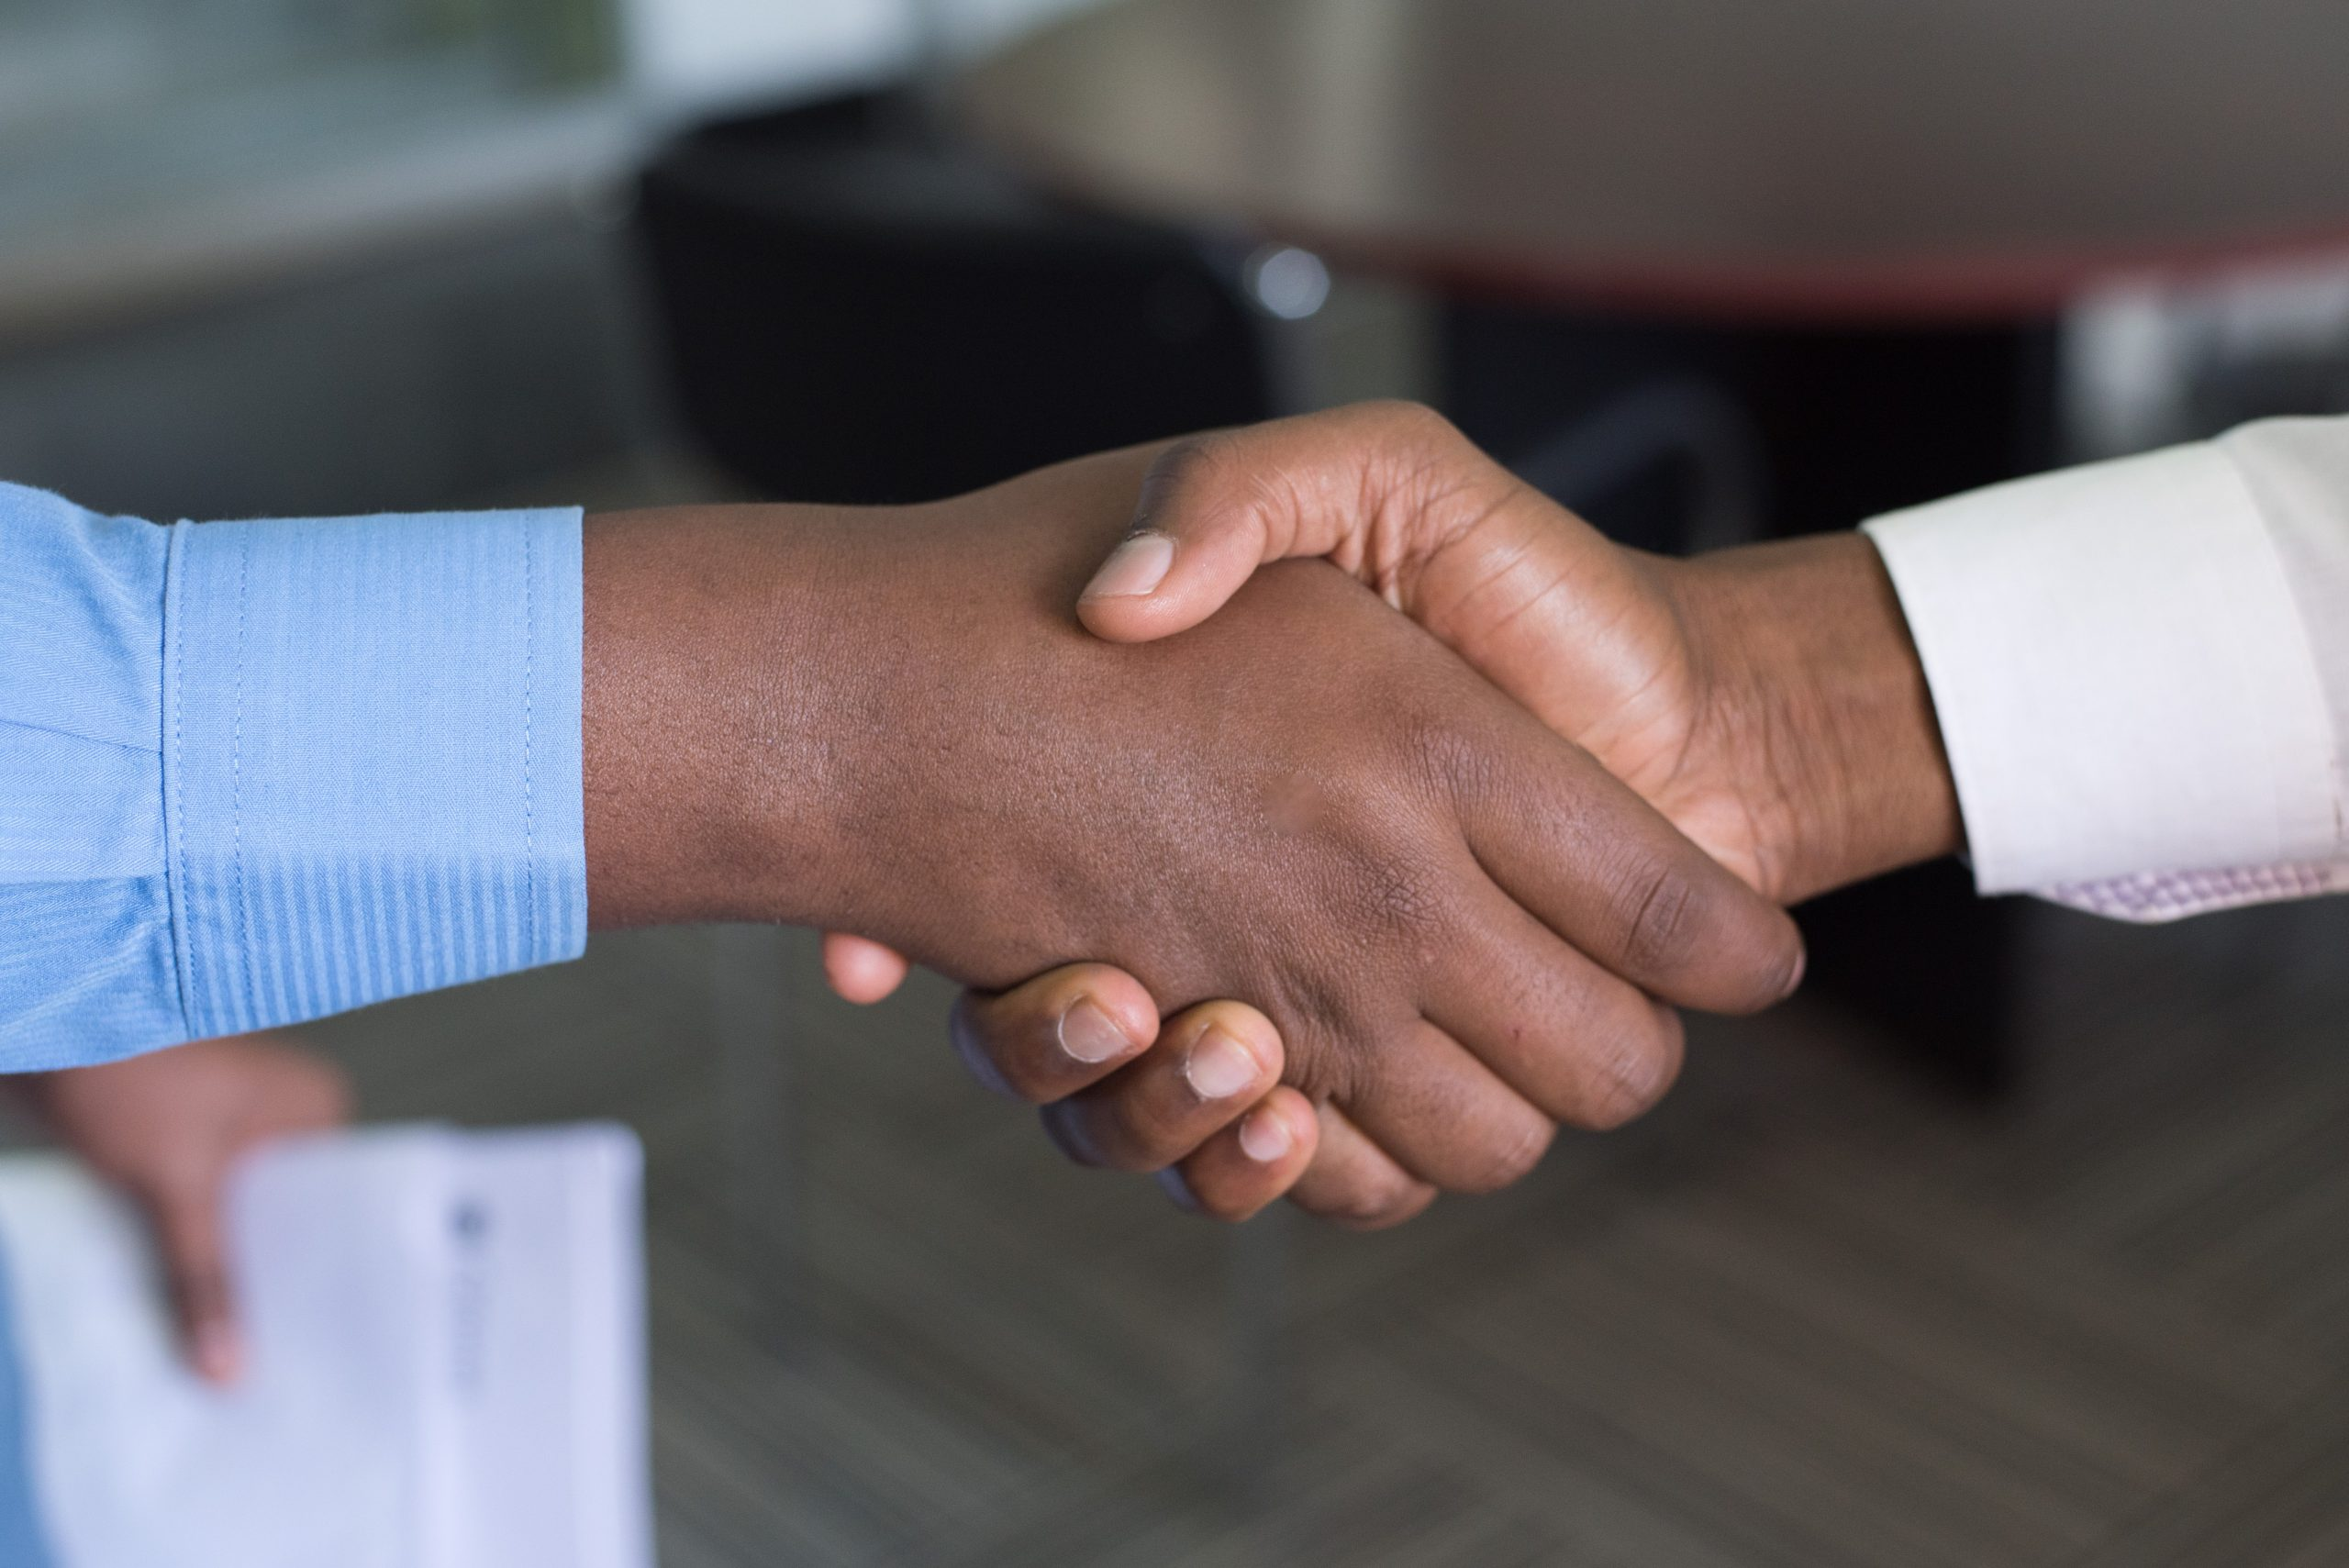 The Key to Finding a Good Co-Founder